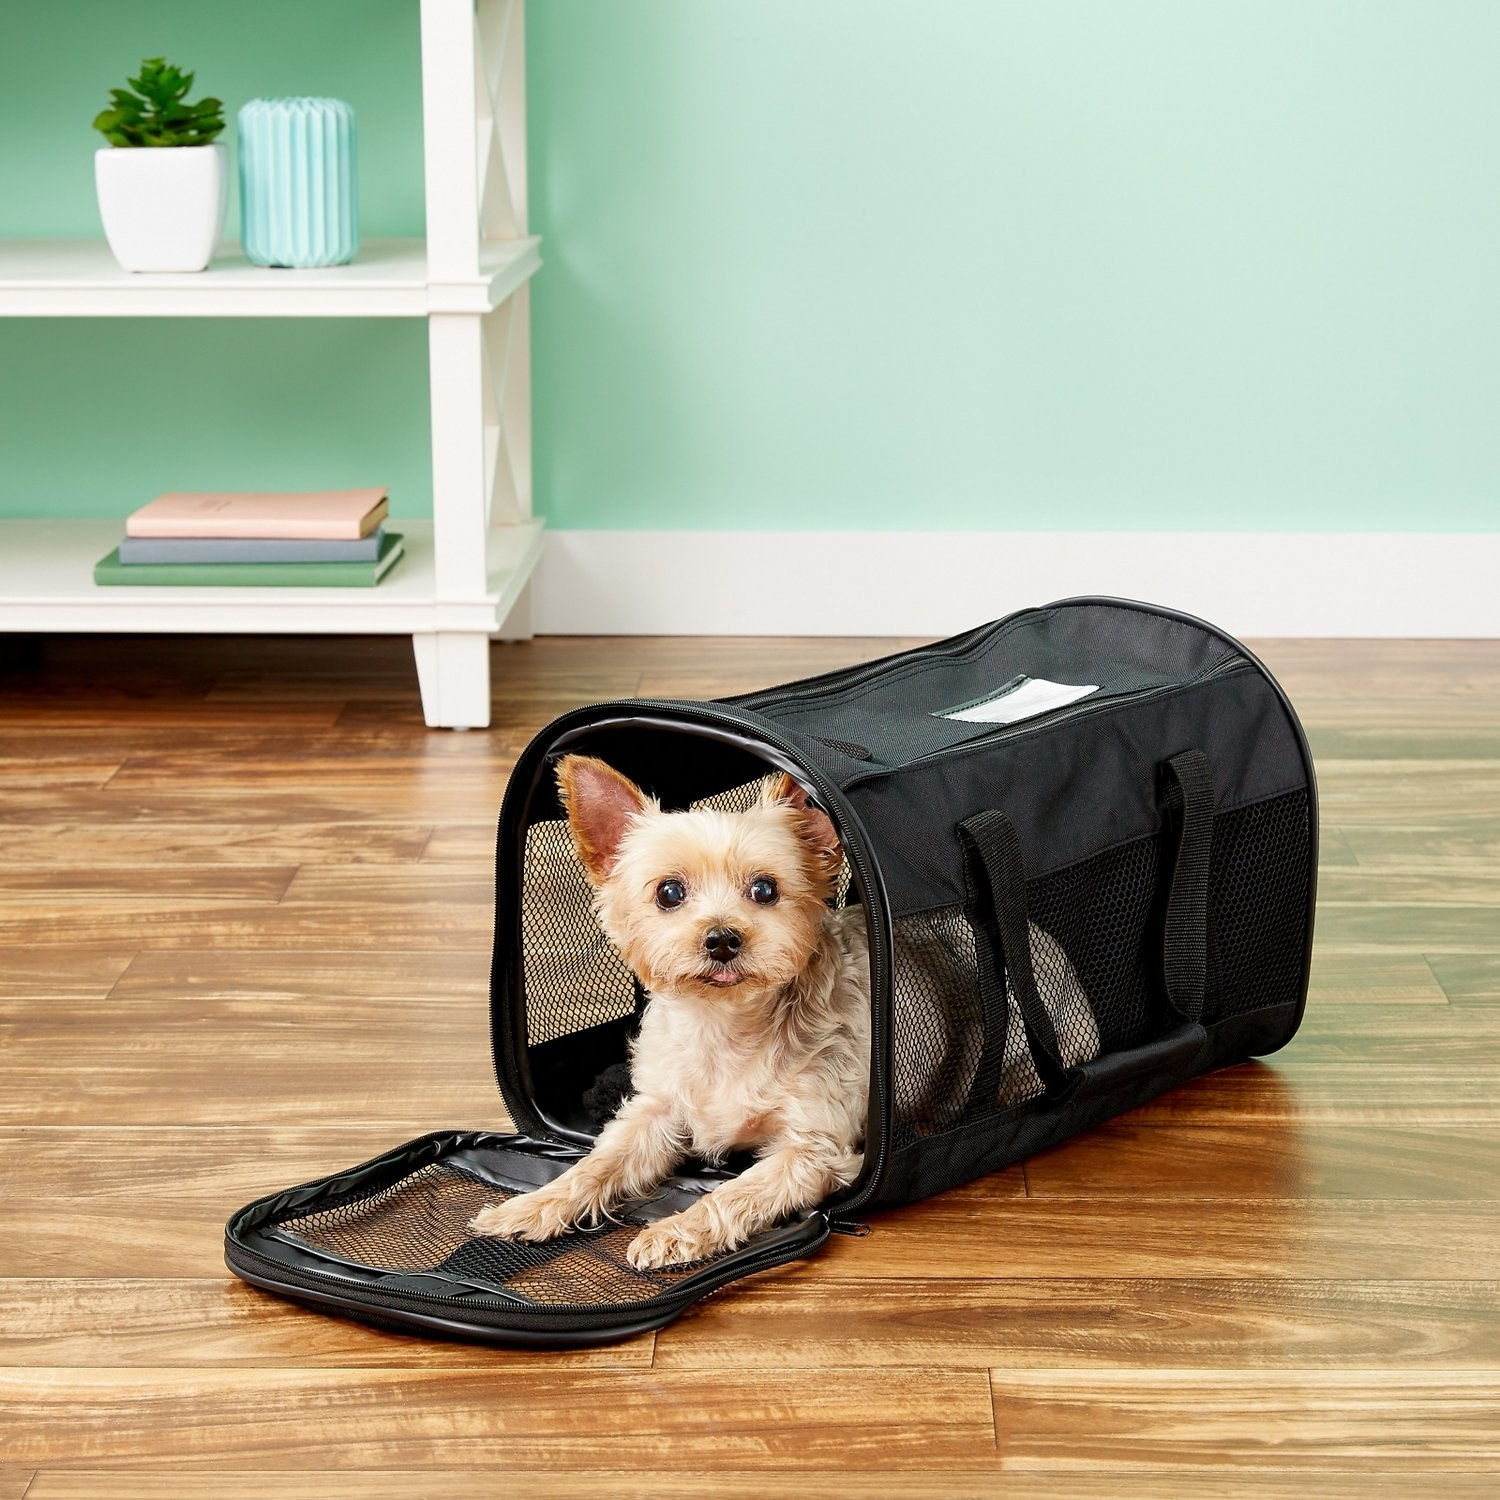 Small dog sitting inside the soft carrier